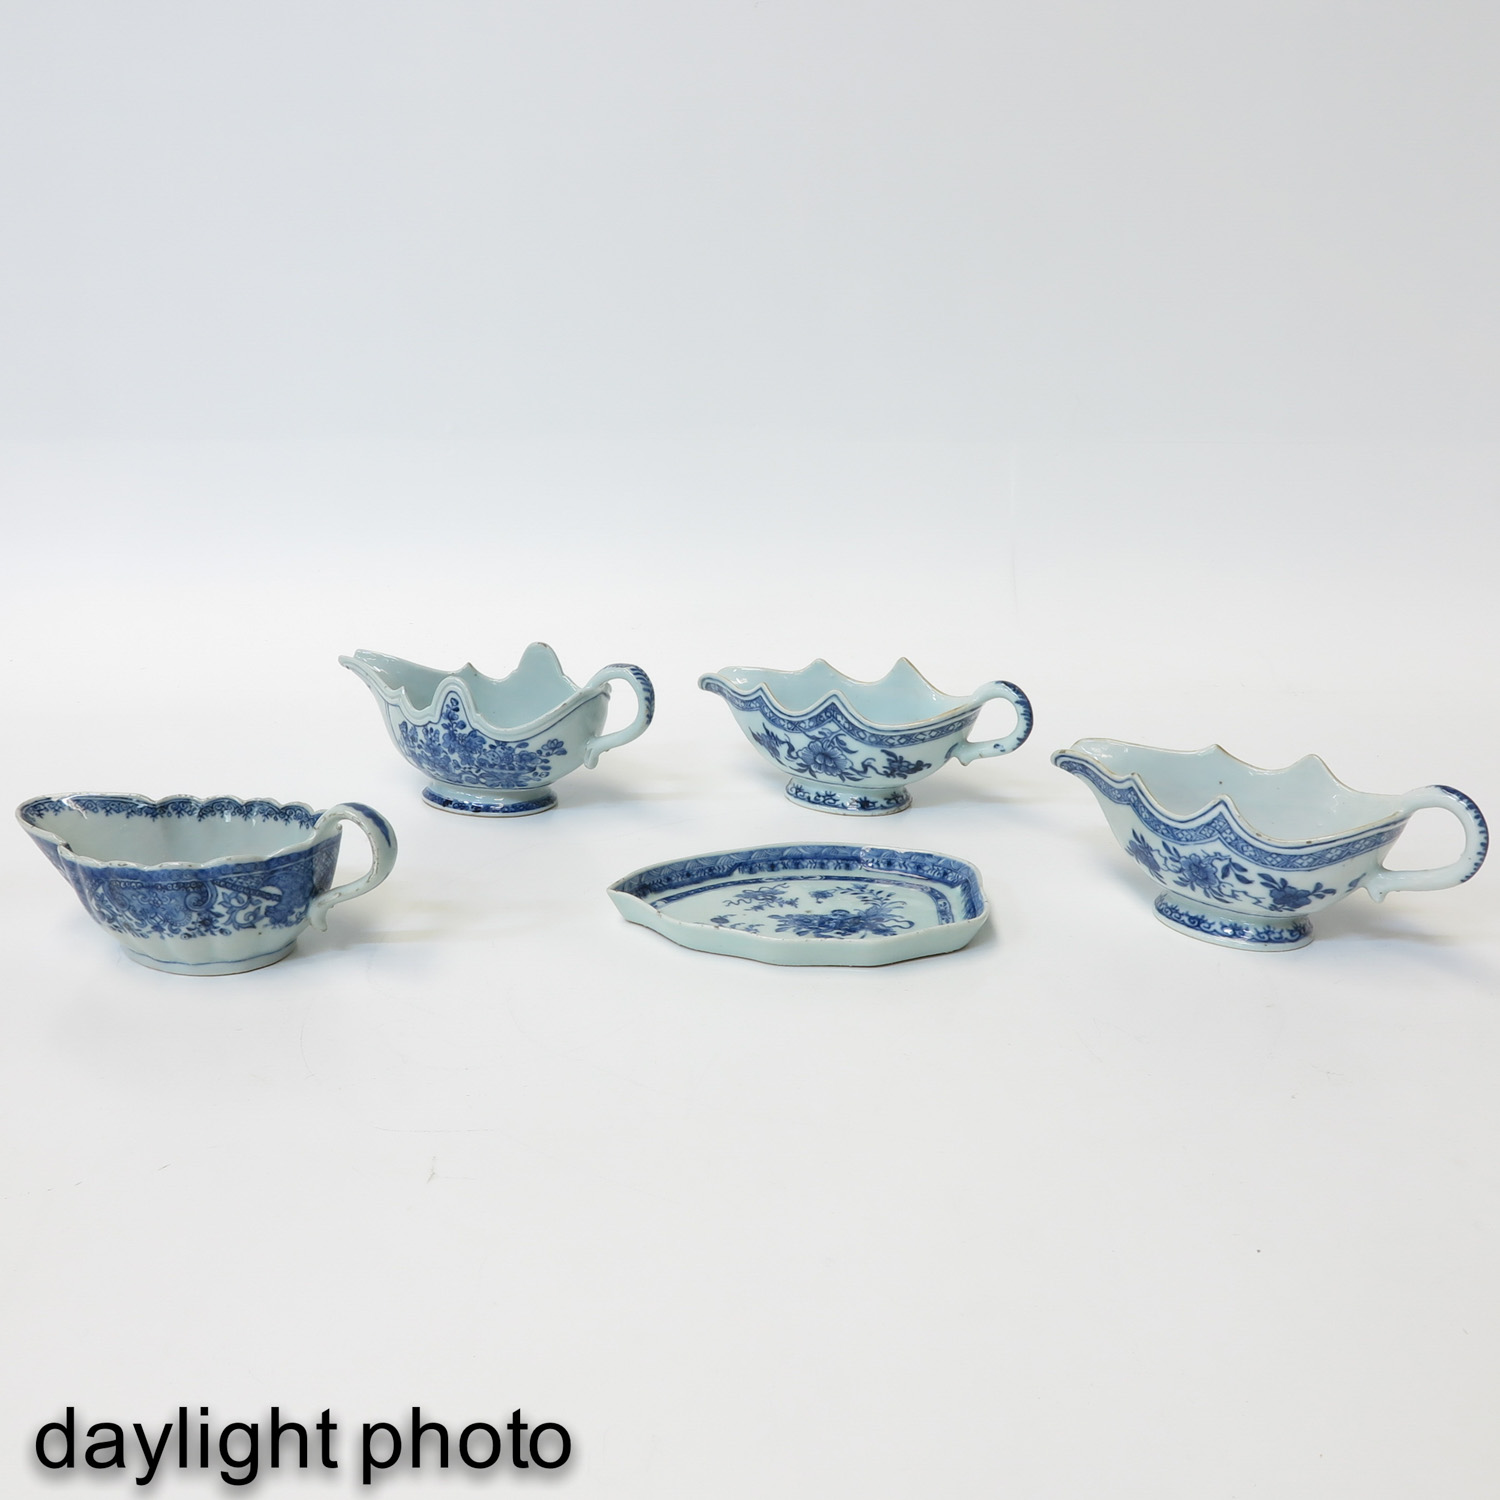 A Collection of Export Porcelain - Image 7 of 9